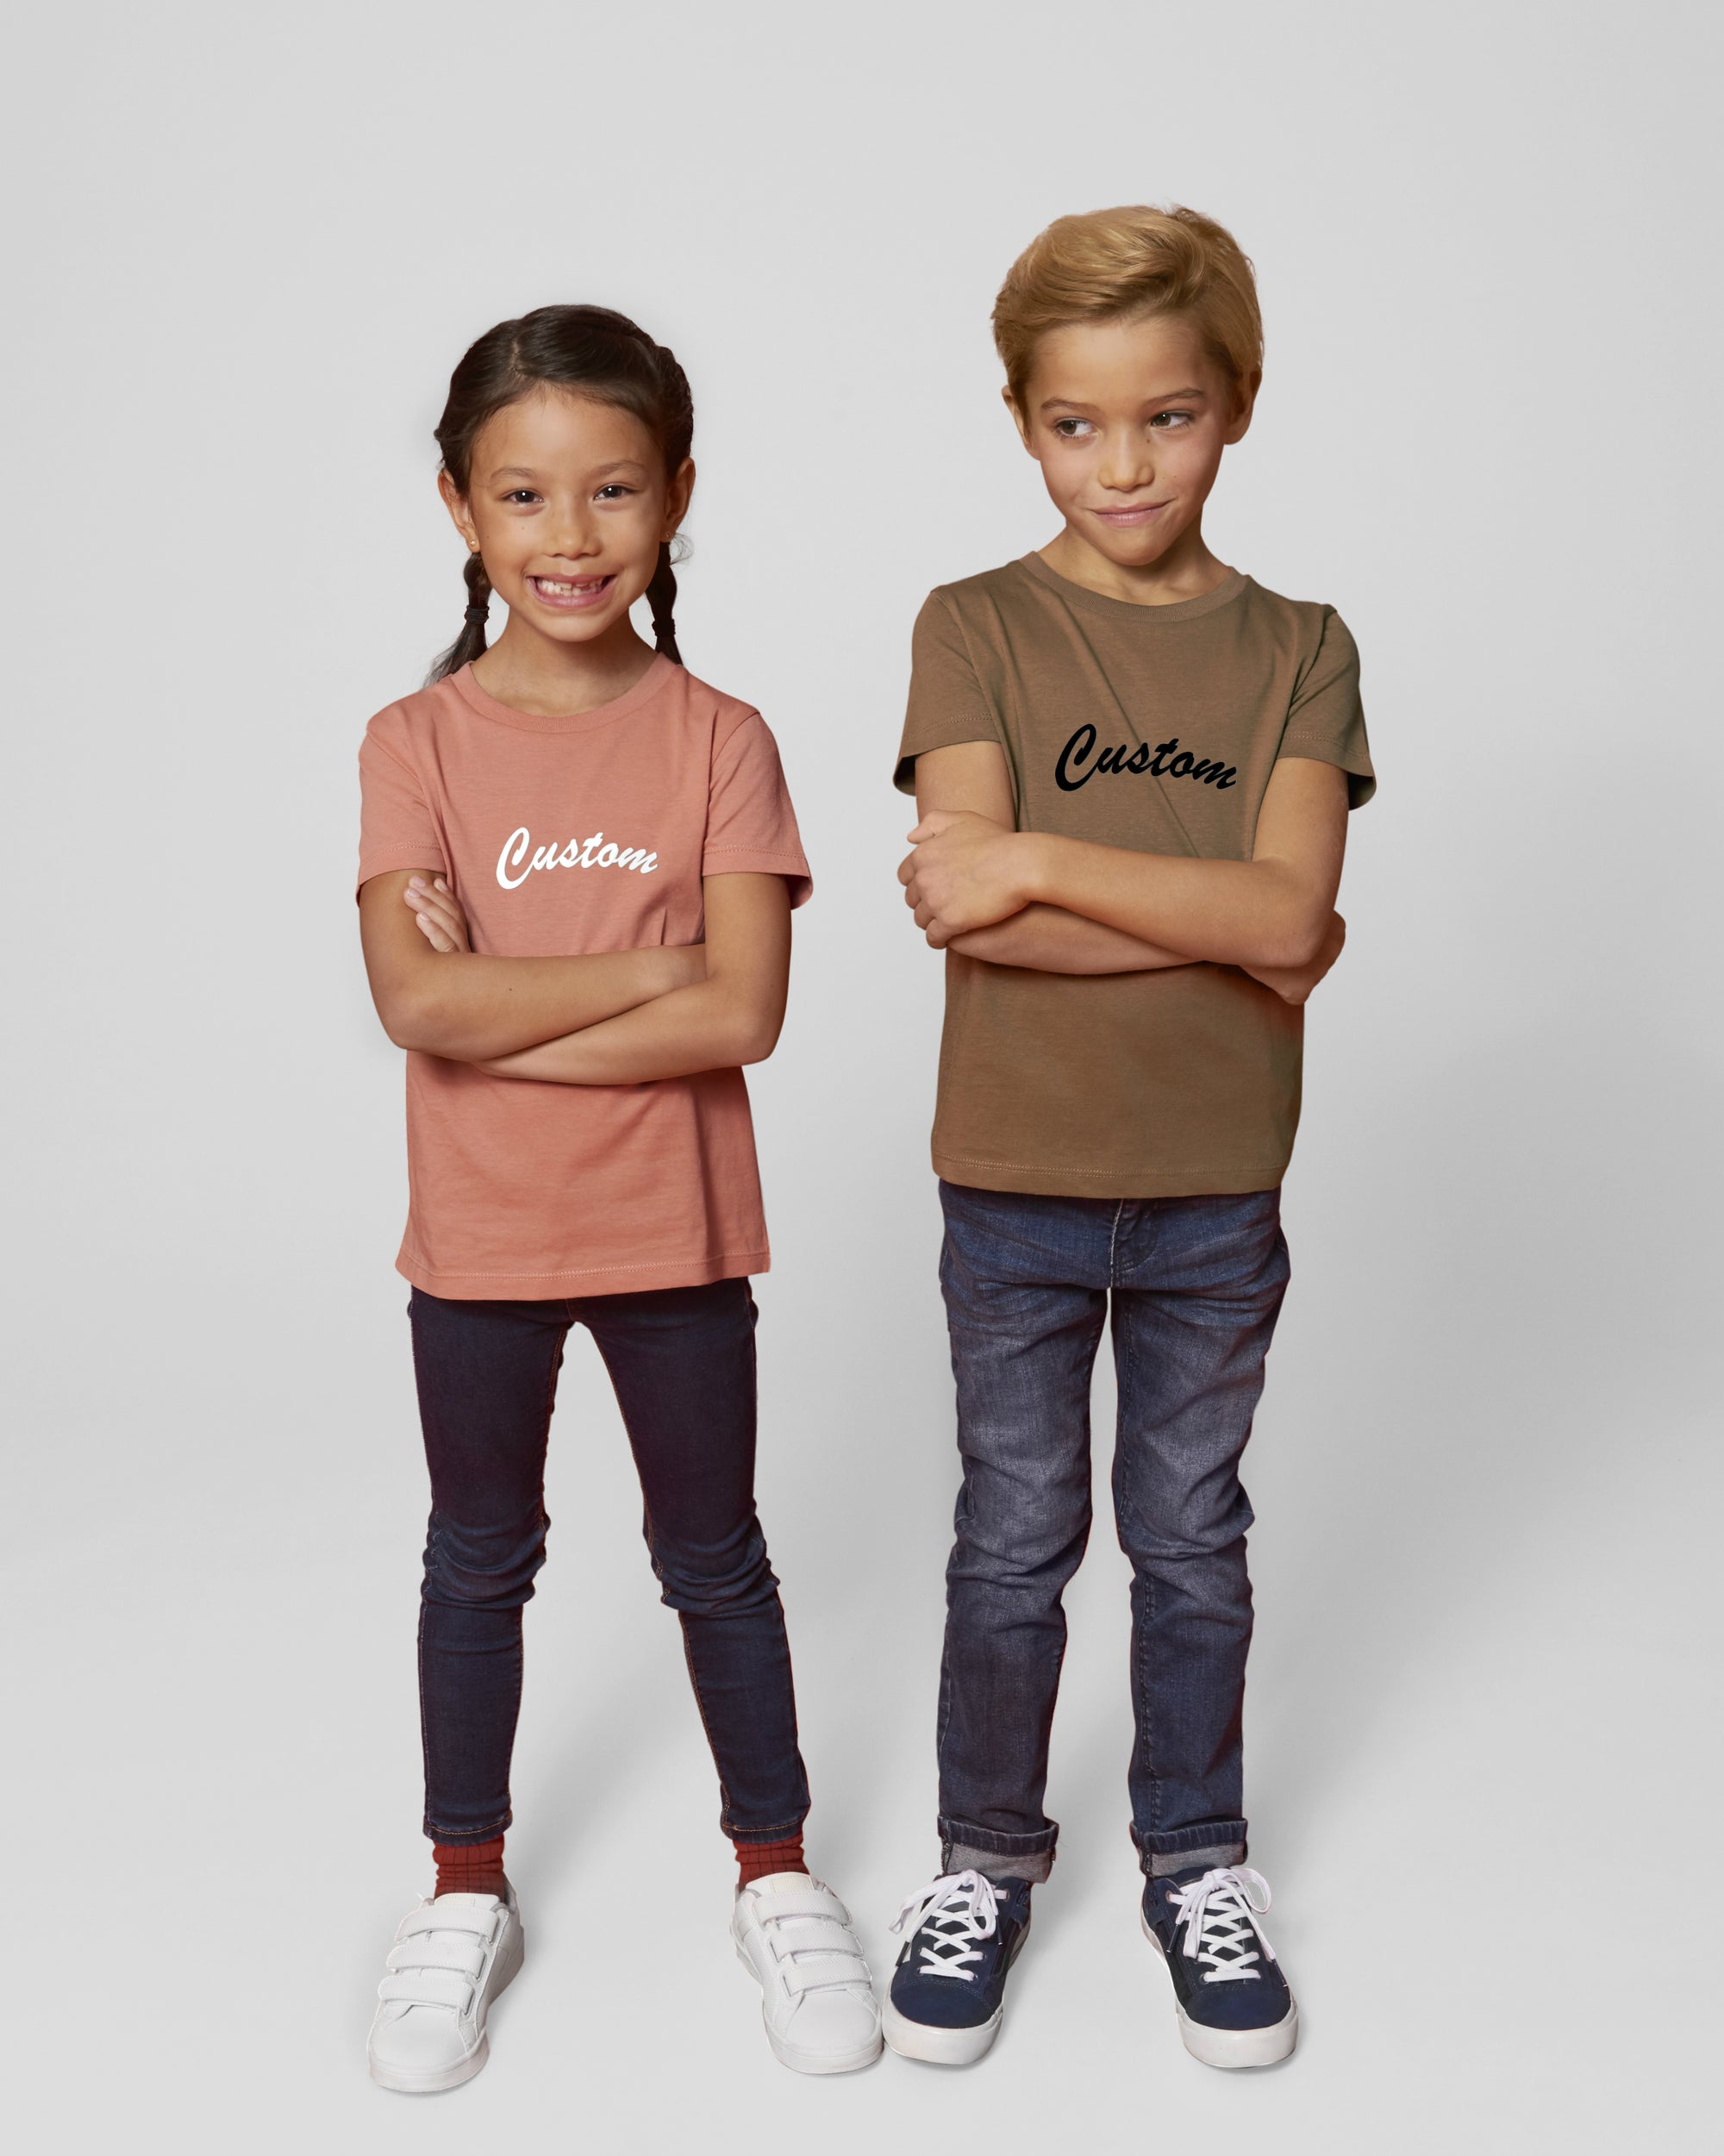 KIDS' ORGANIC COTTON CREW NECK 'MINI-CREATOR' T-SHIRT - customisable centre chest embroidery